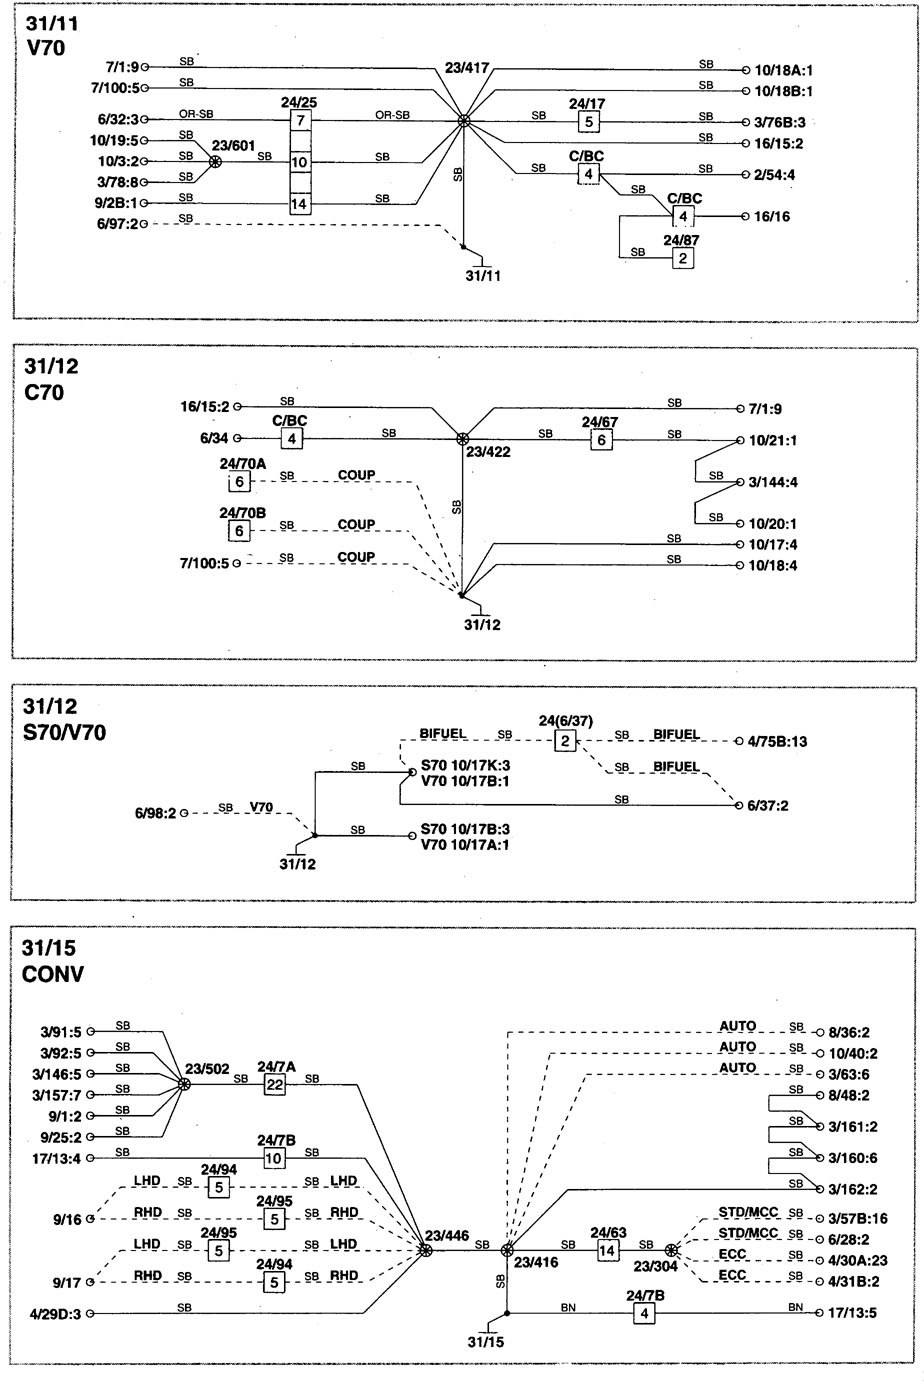 volvo c70 wiring diagram ground distribution 3 1999 volvo c70 (1999 2004) wiring diagrams ground distribution c70 wiring diagram at bakdesigns.co